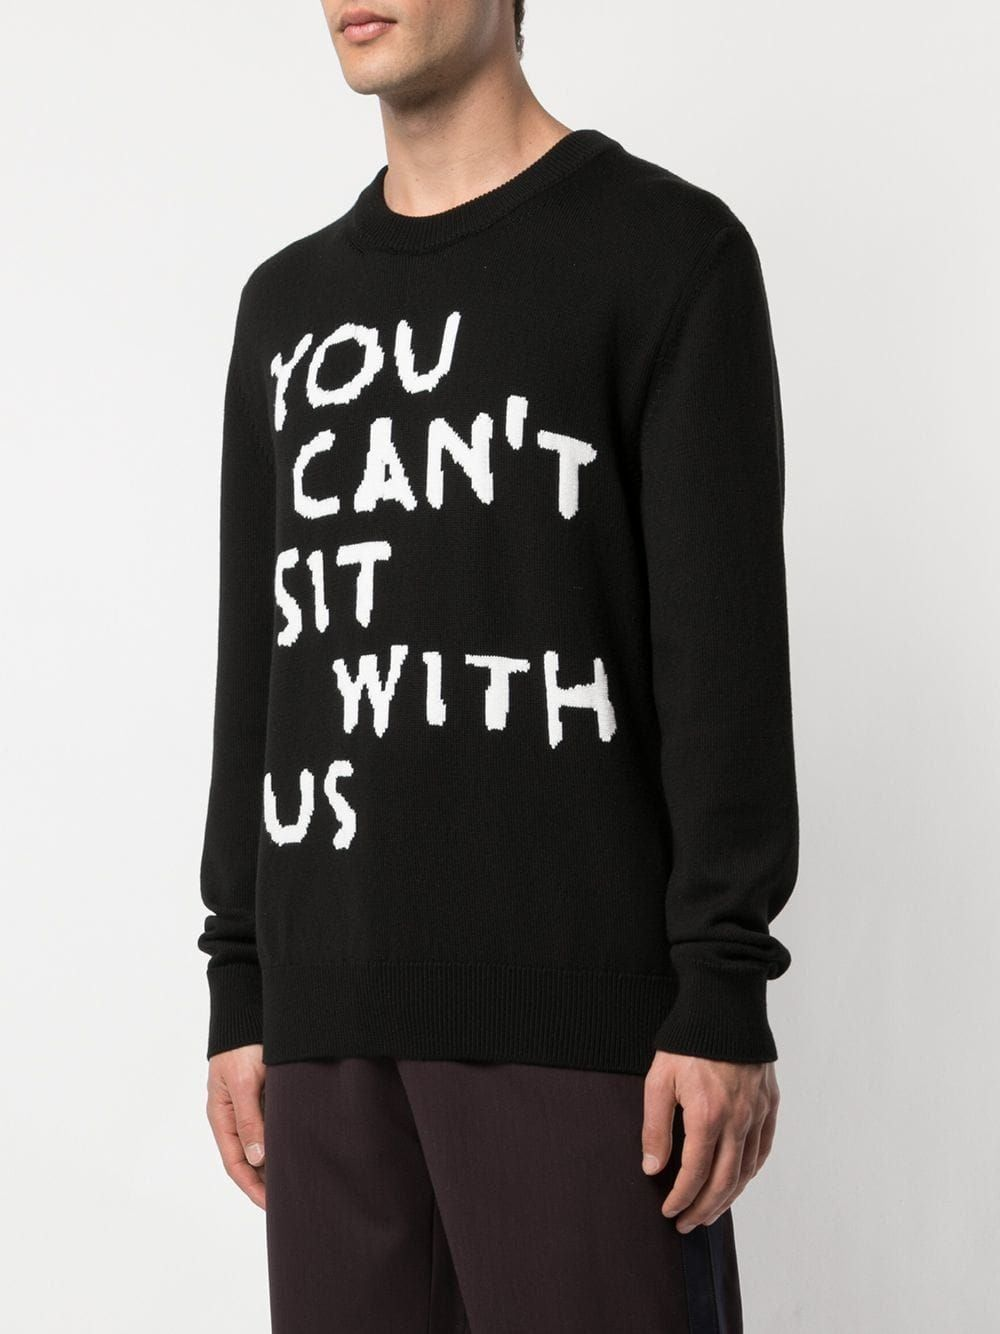 Black You Cant Sit With Us Pullover Sweater